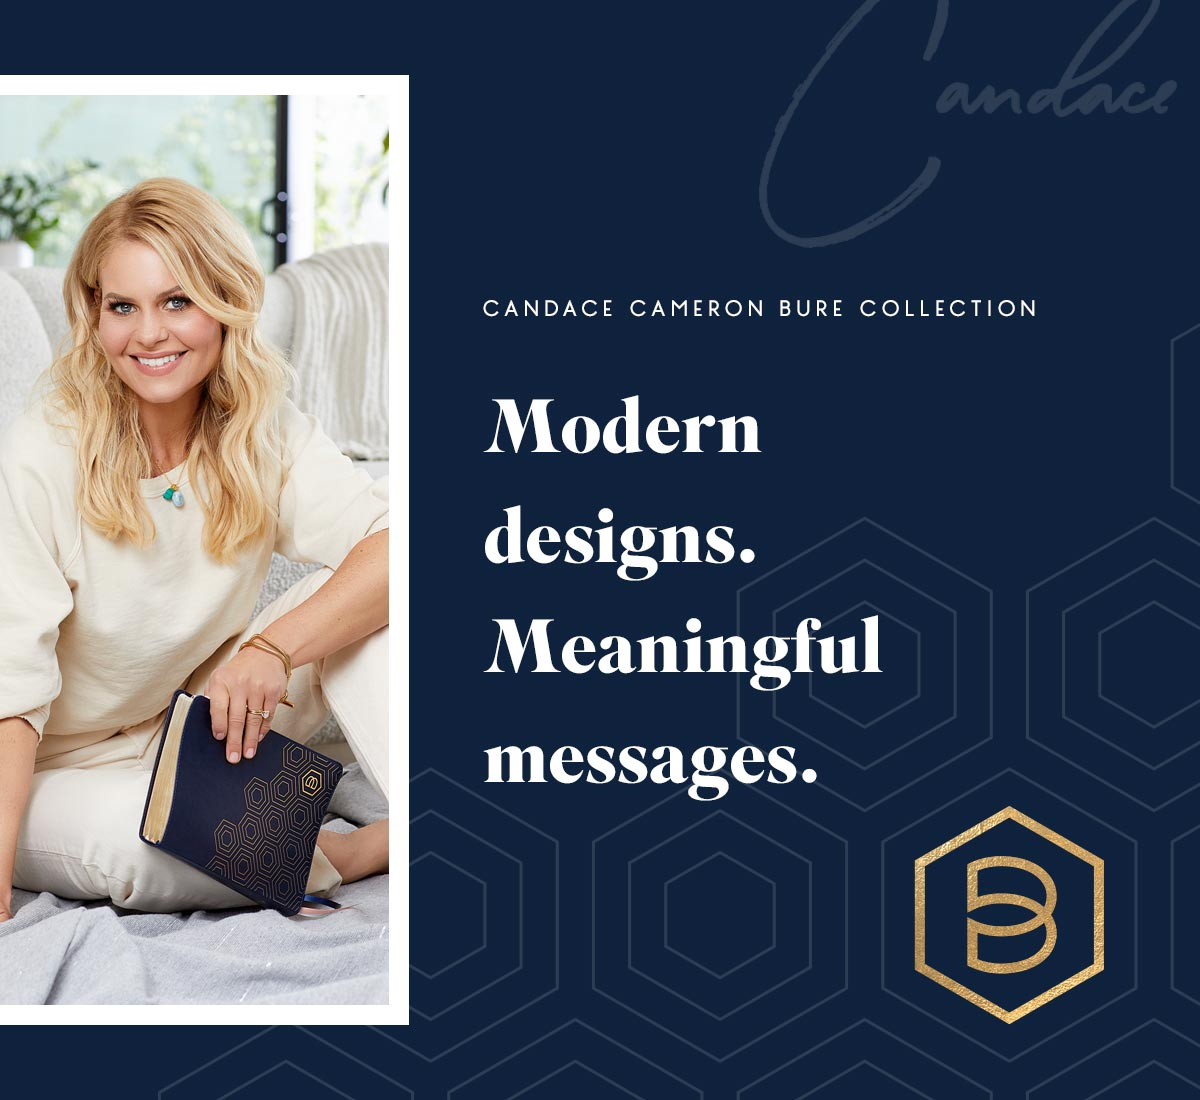 Candace Cameron Bure Collection